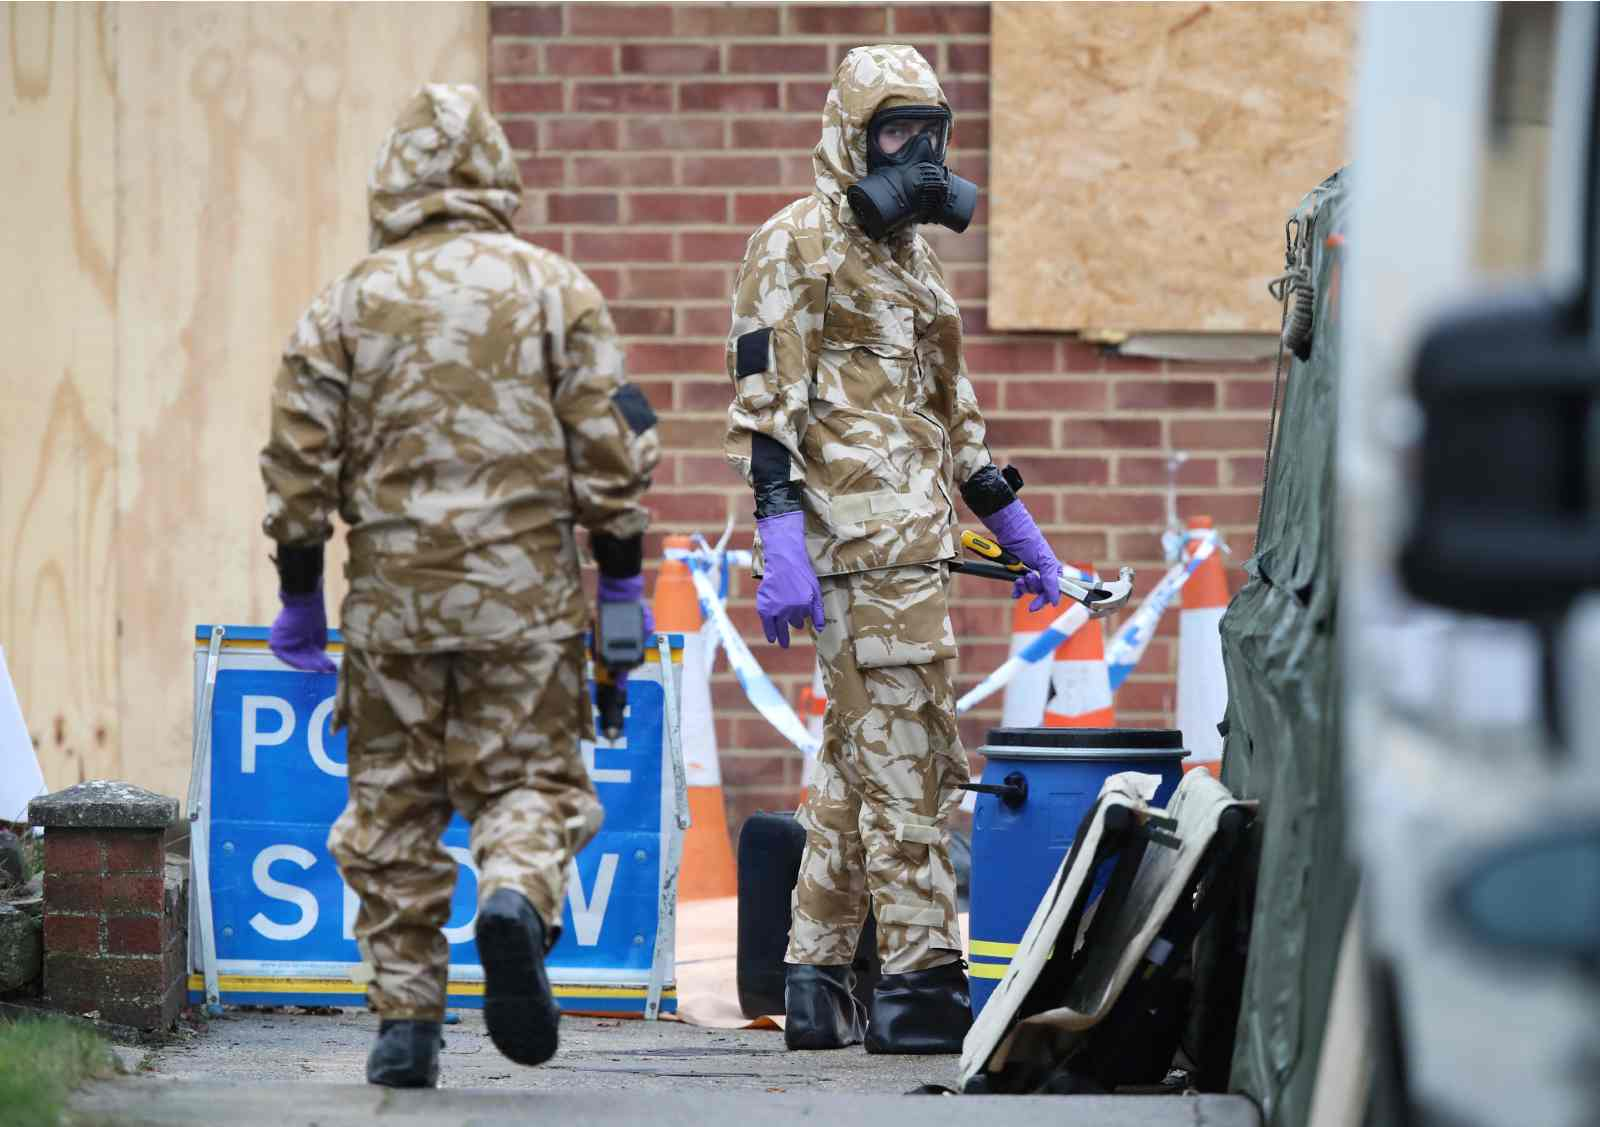 Members of the military wear protective clothing as work continues on the home of former Russian spy Sergei Skripal in Salisbury, Wiltshire. The property is to be dismantled, with the roof completely removed by military teams in the wake of the Novichok attack as decontamination work continues.